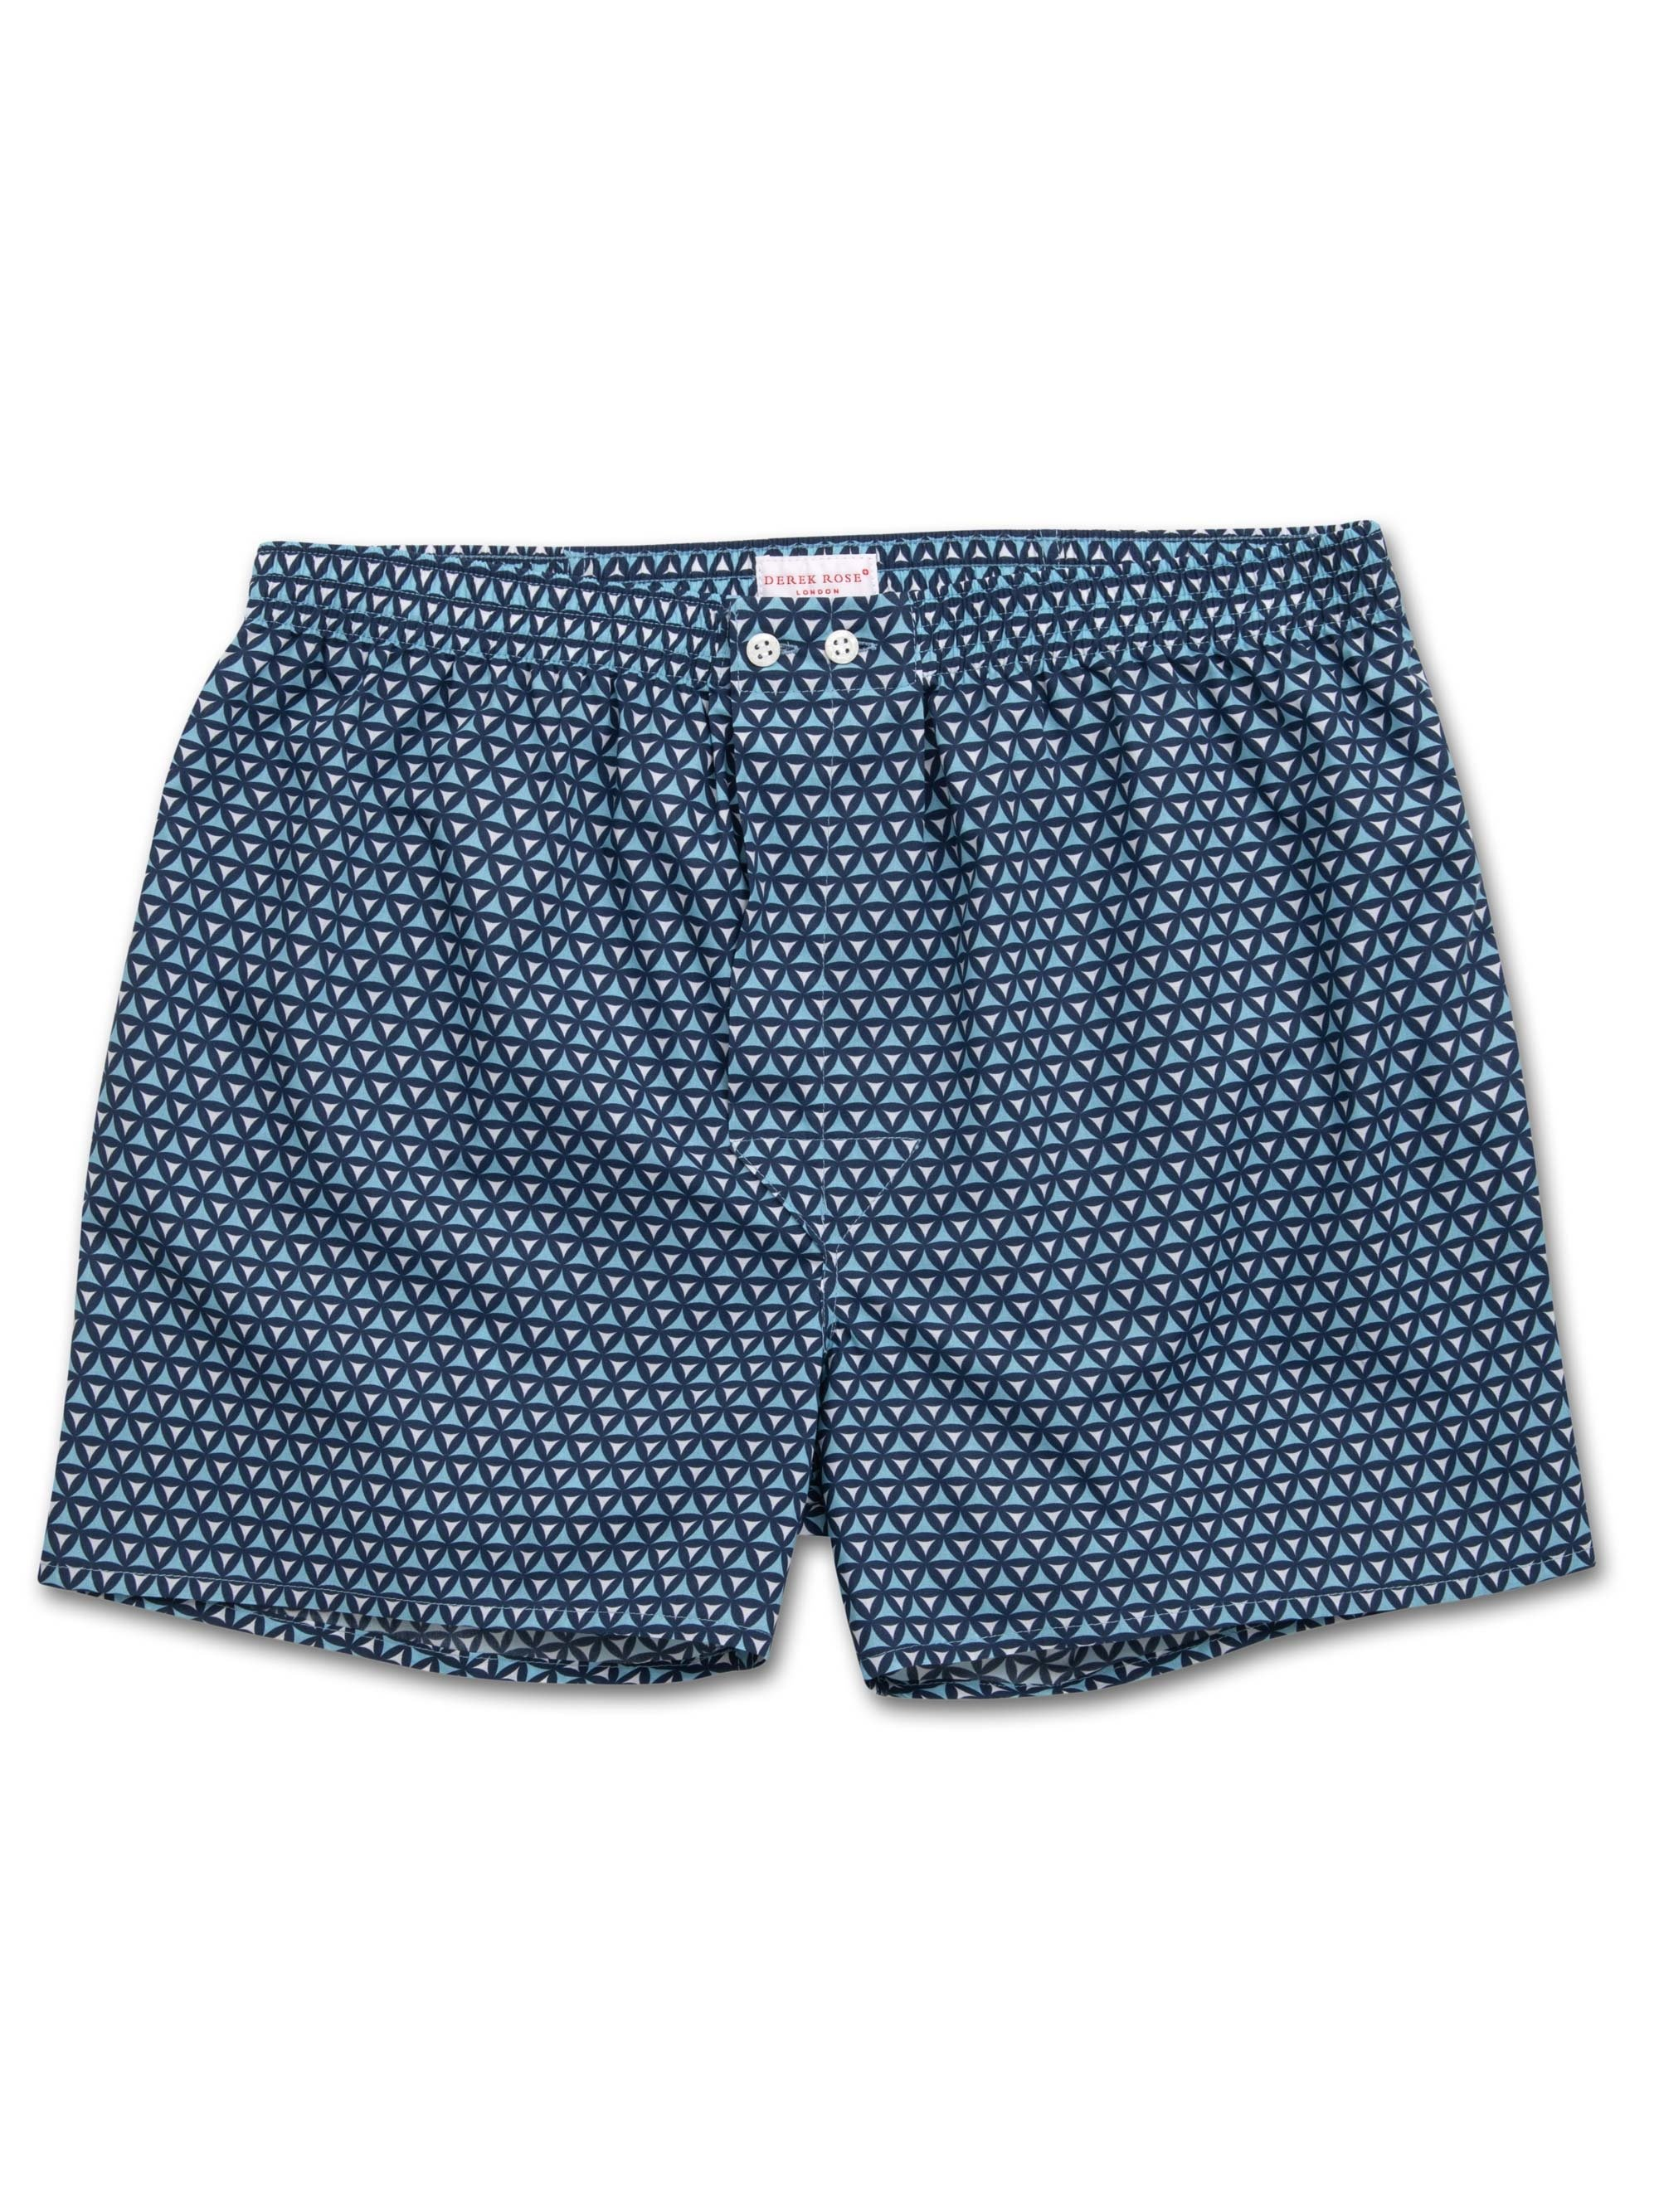 Men's Classic Fit Boxer Shorts Ledbury 26 Cotton Batiste Navy